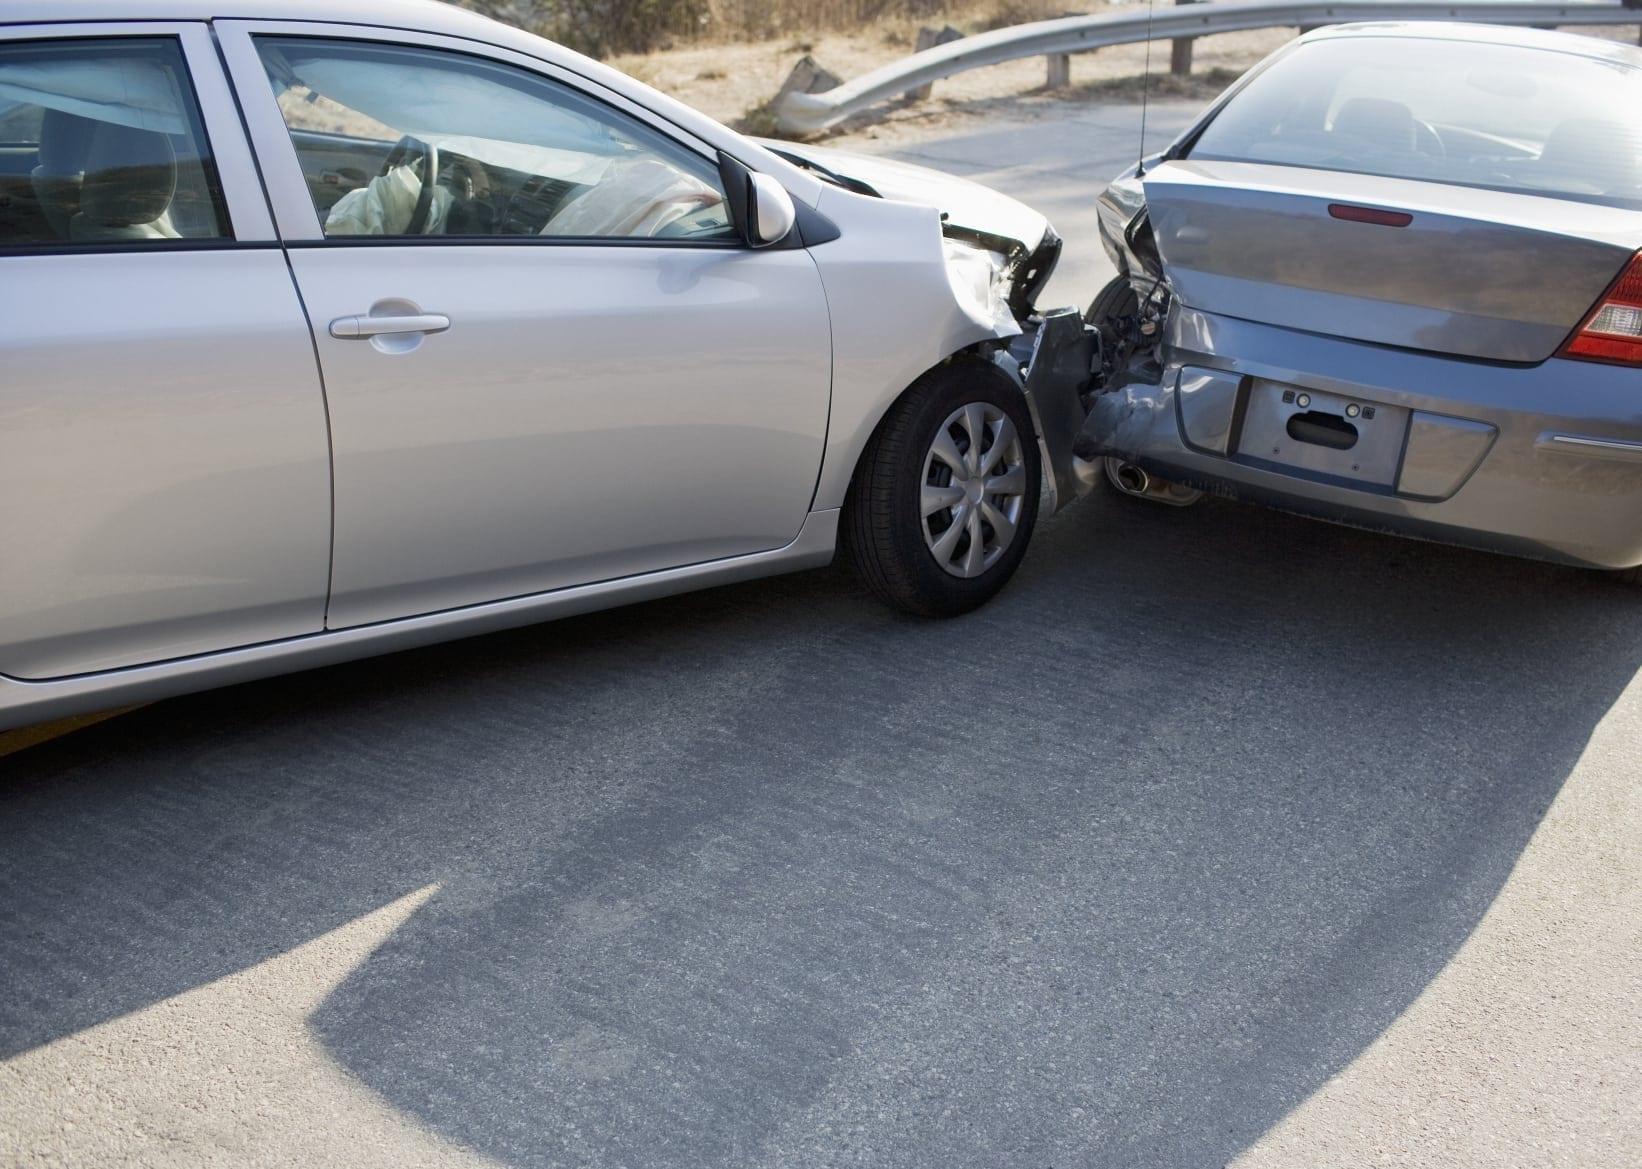 Rear End Car Accident On Rural Highway Stock Photo